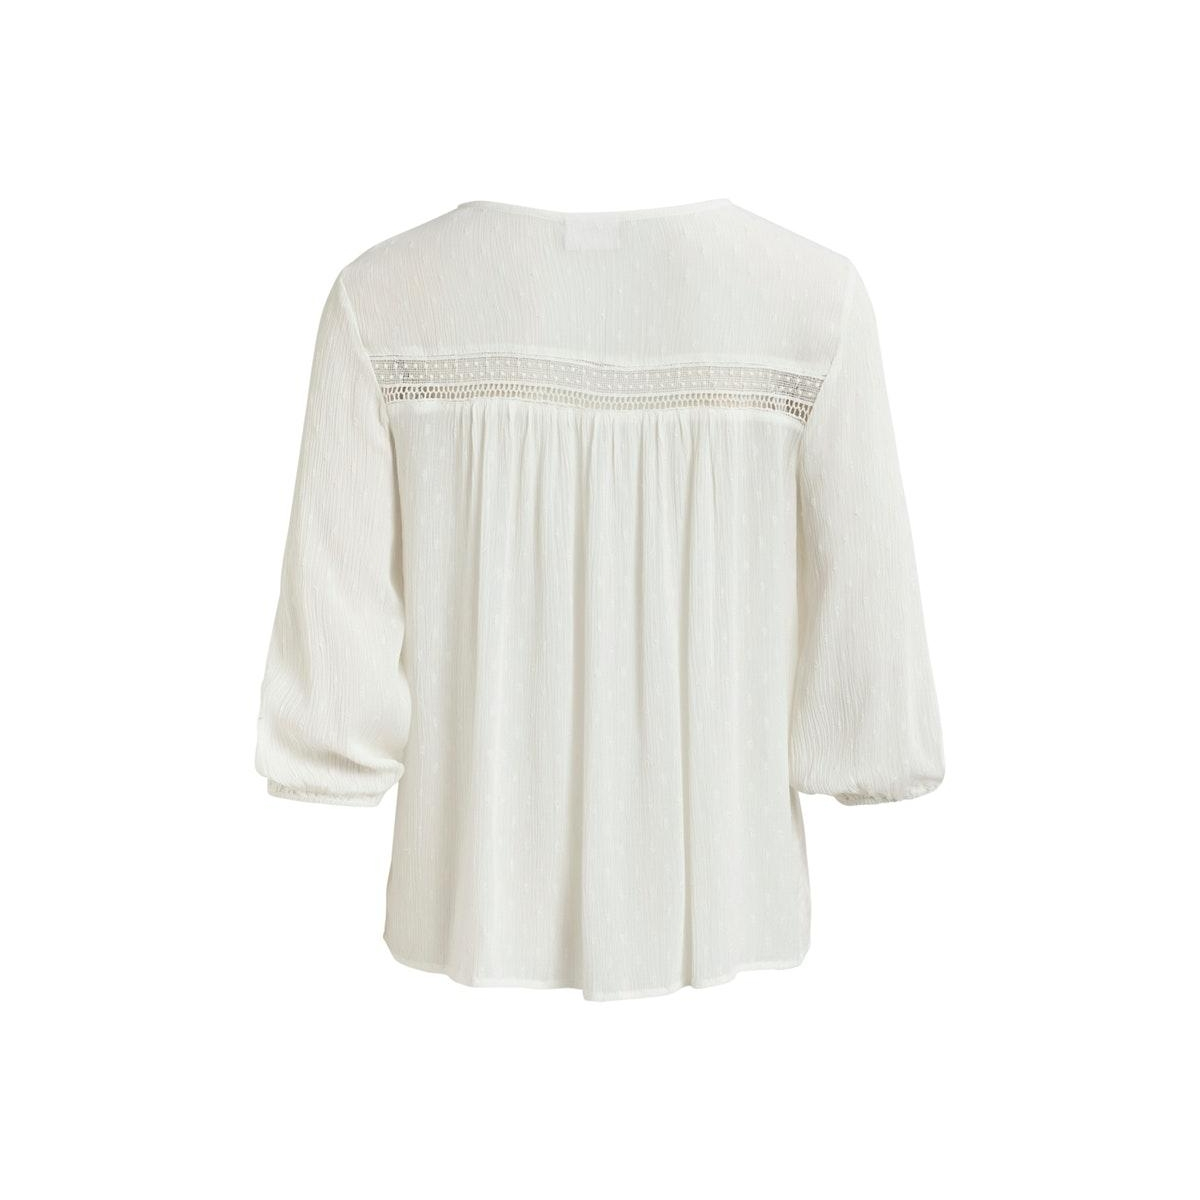 viazolla 3/4 top 14057743 vila blouse cloud dancer